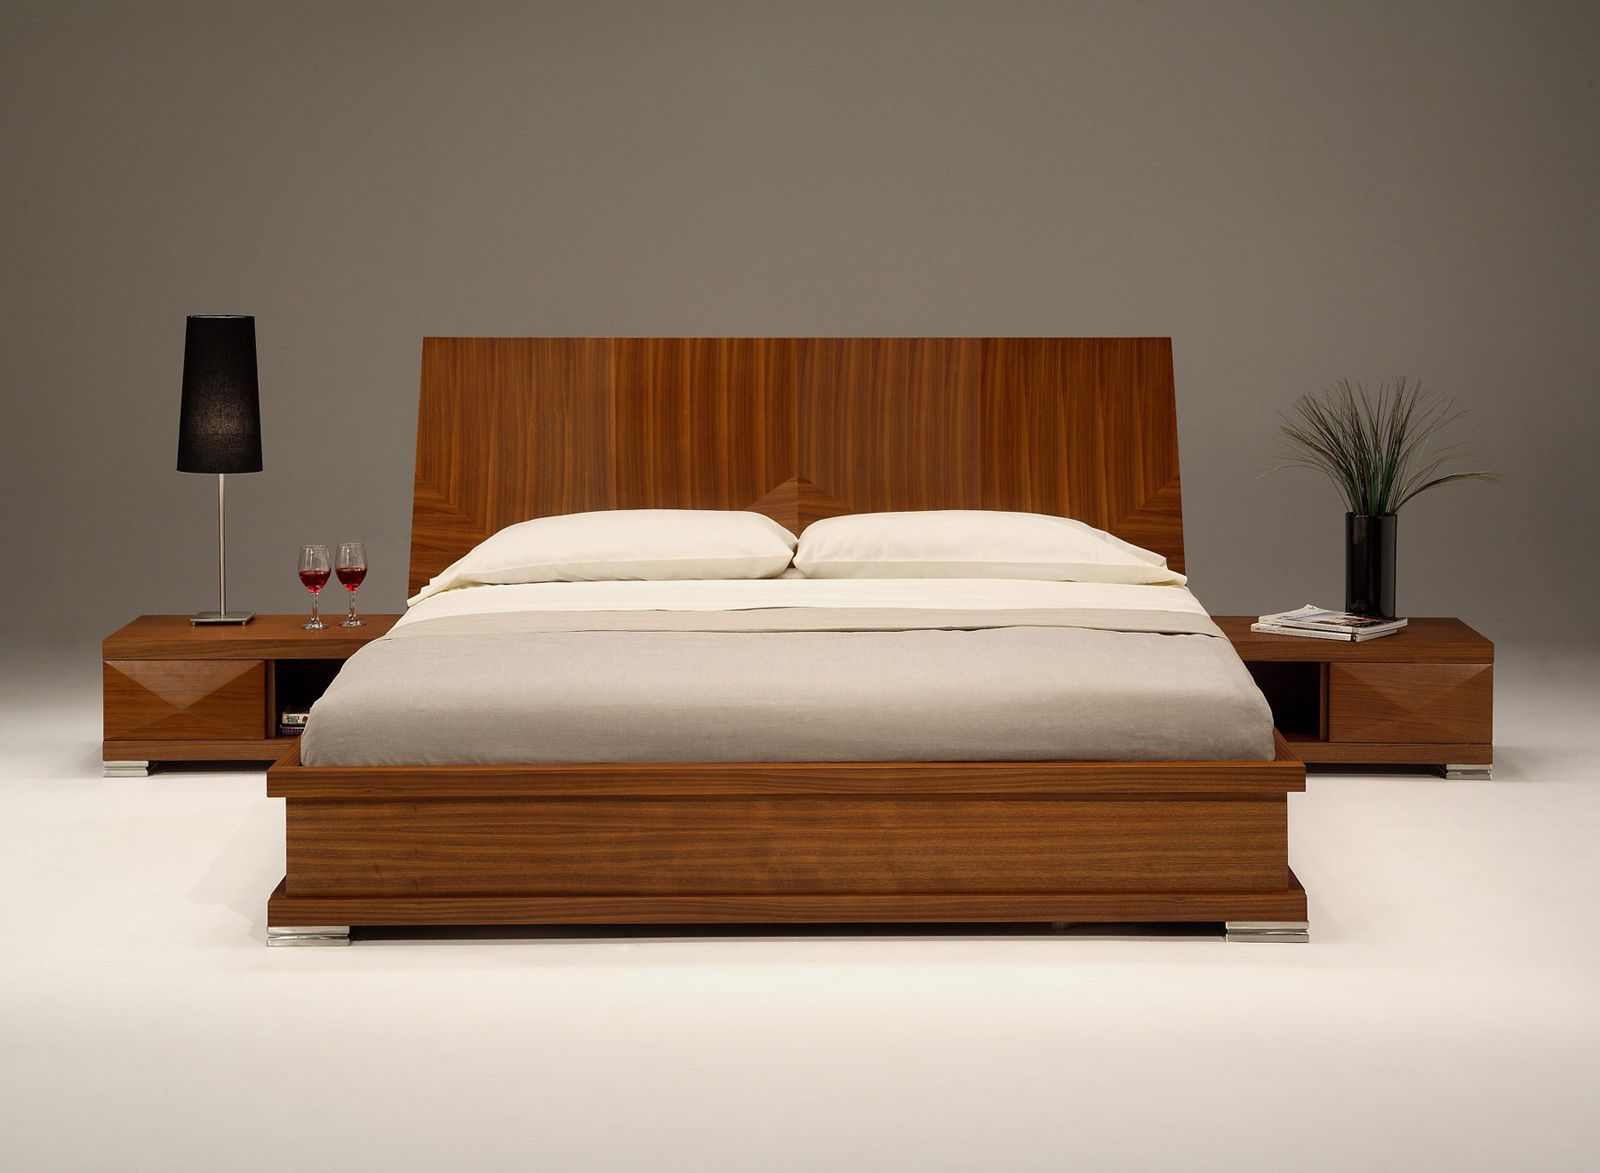 Bedroom design tips with modern bedroom furniture for Stylish furniture for bedroom